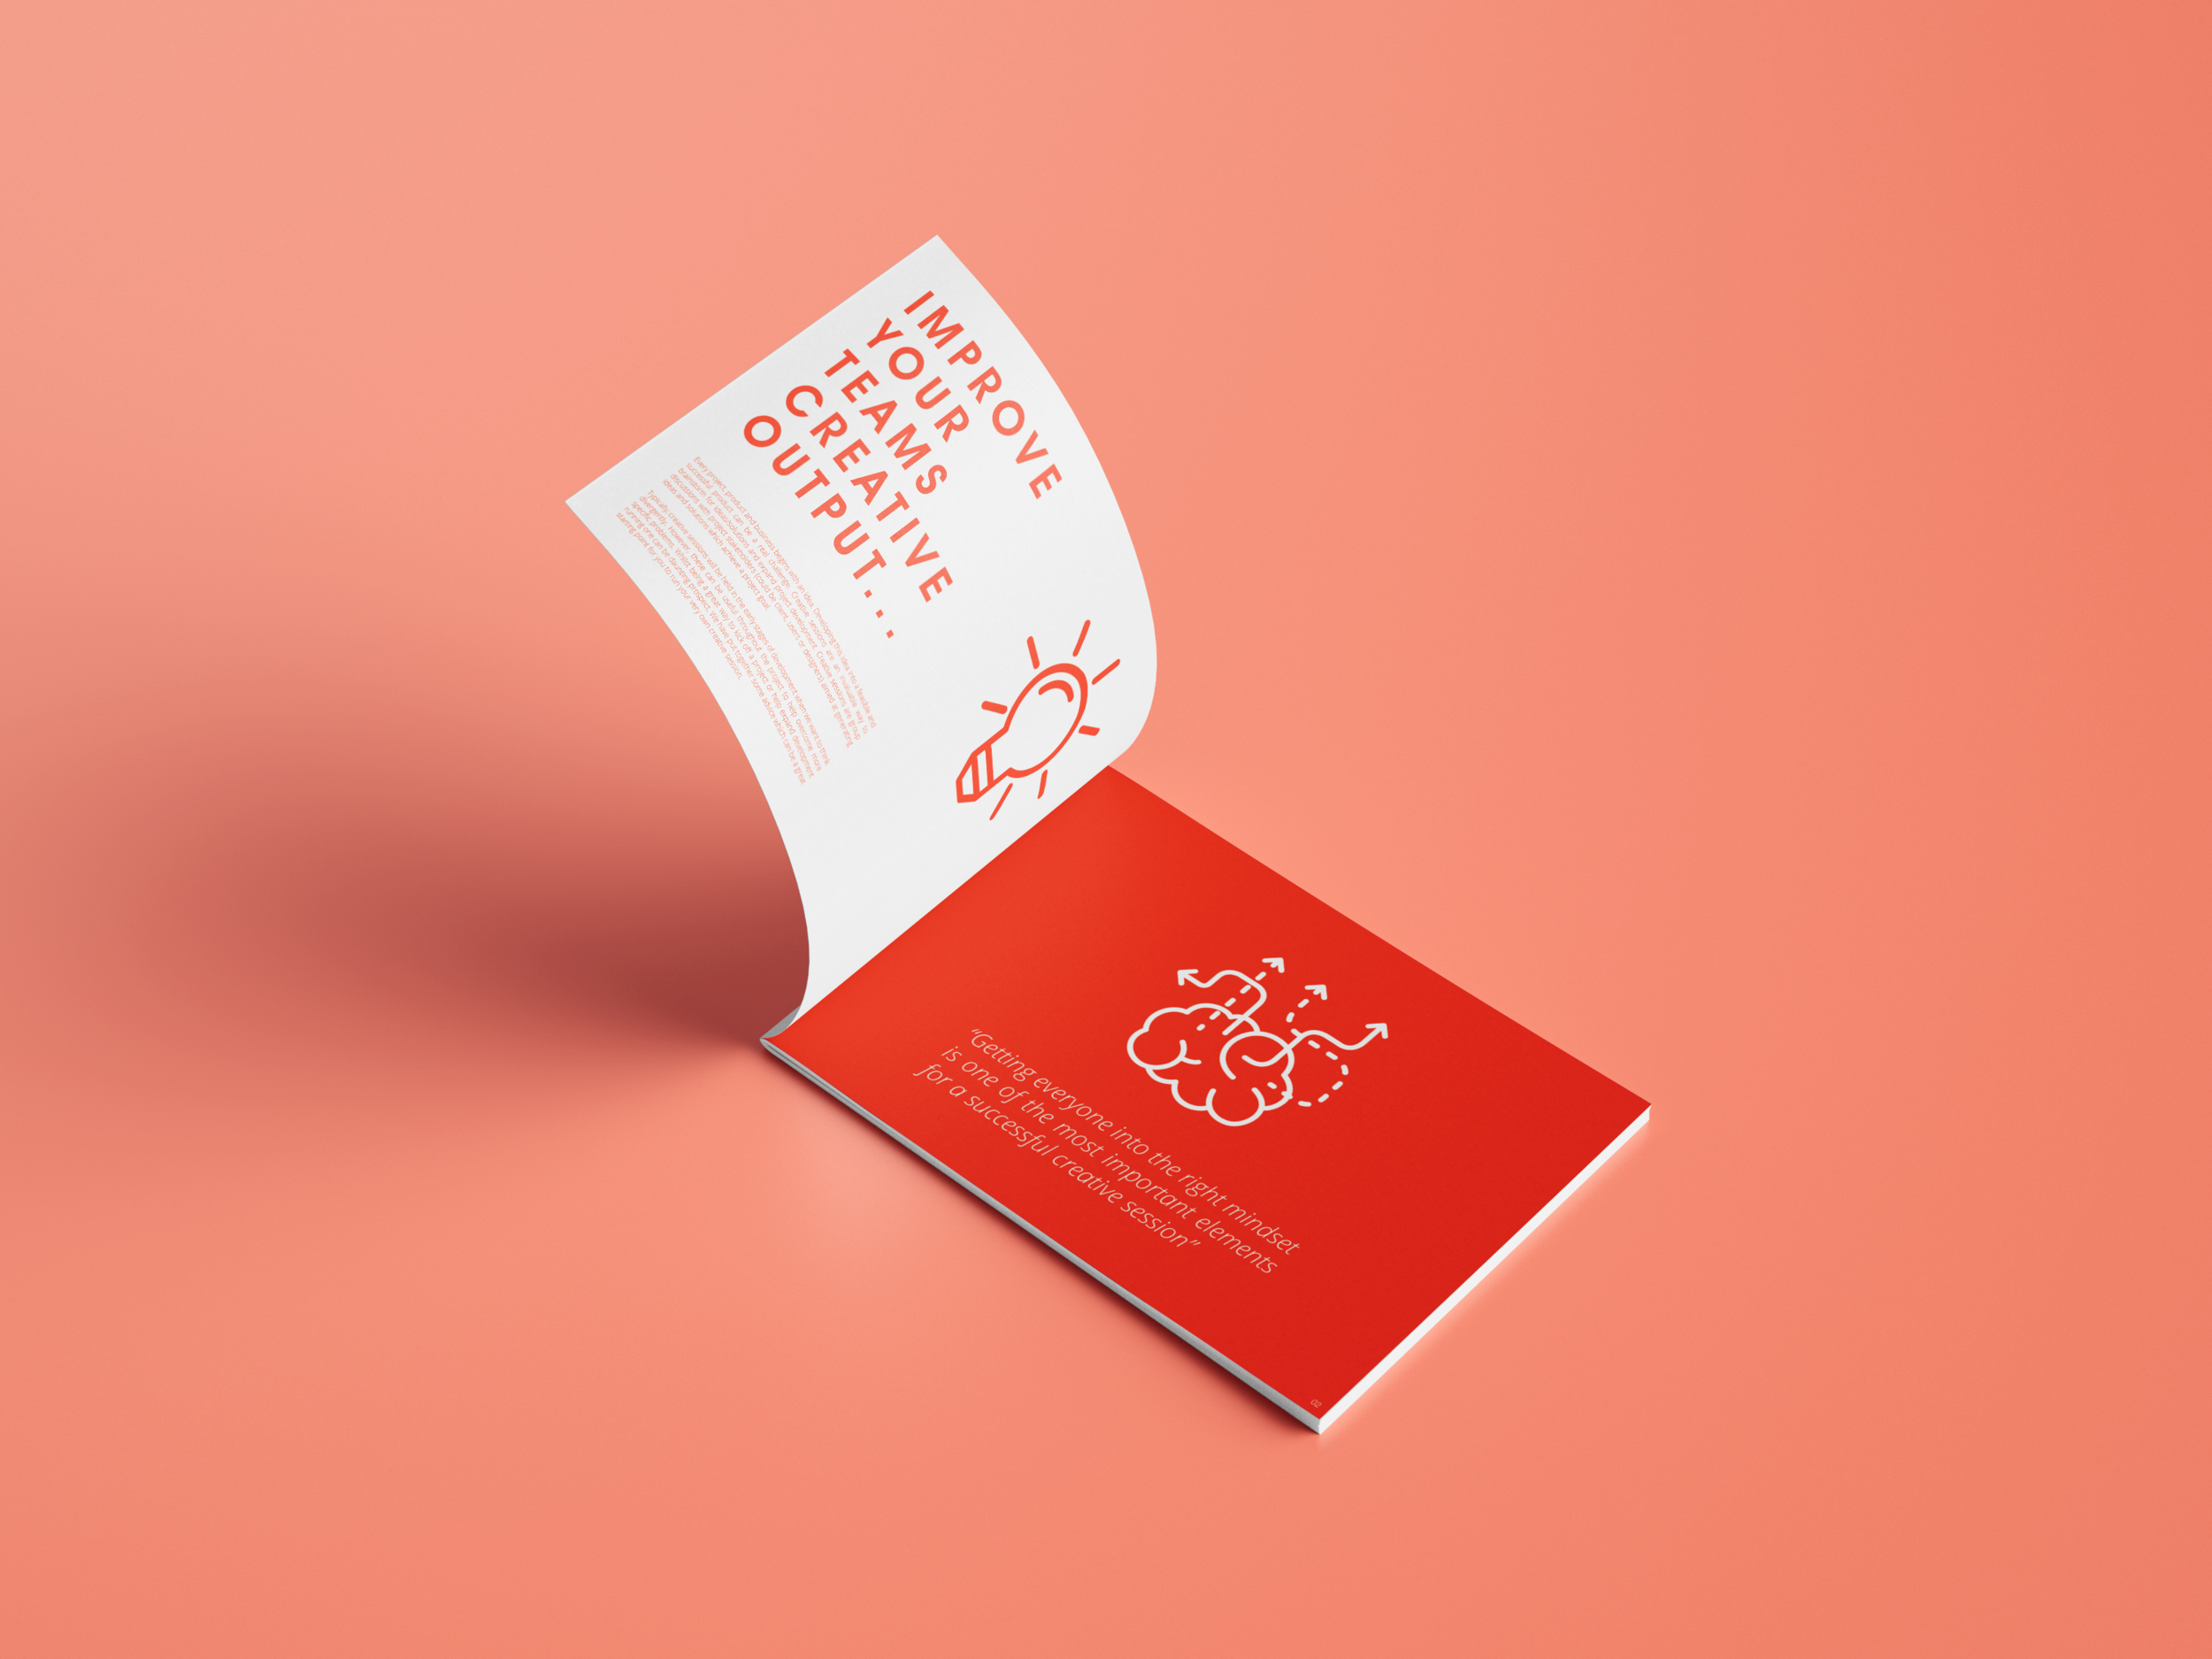 How to run a successful creative session booklet 02.png